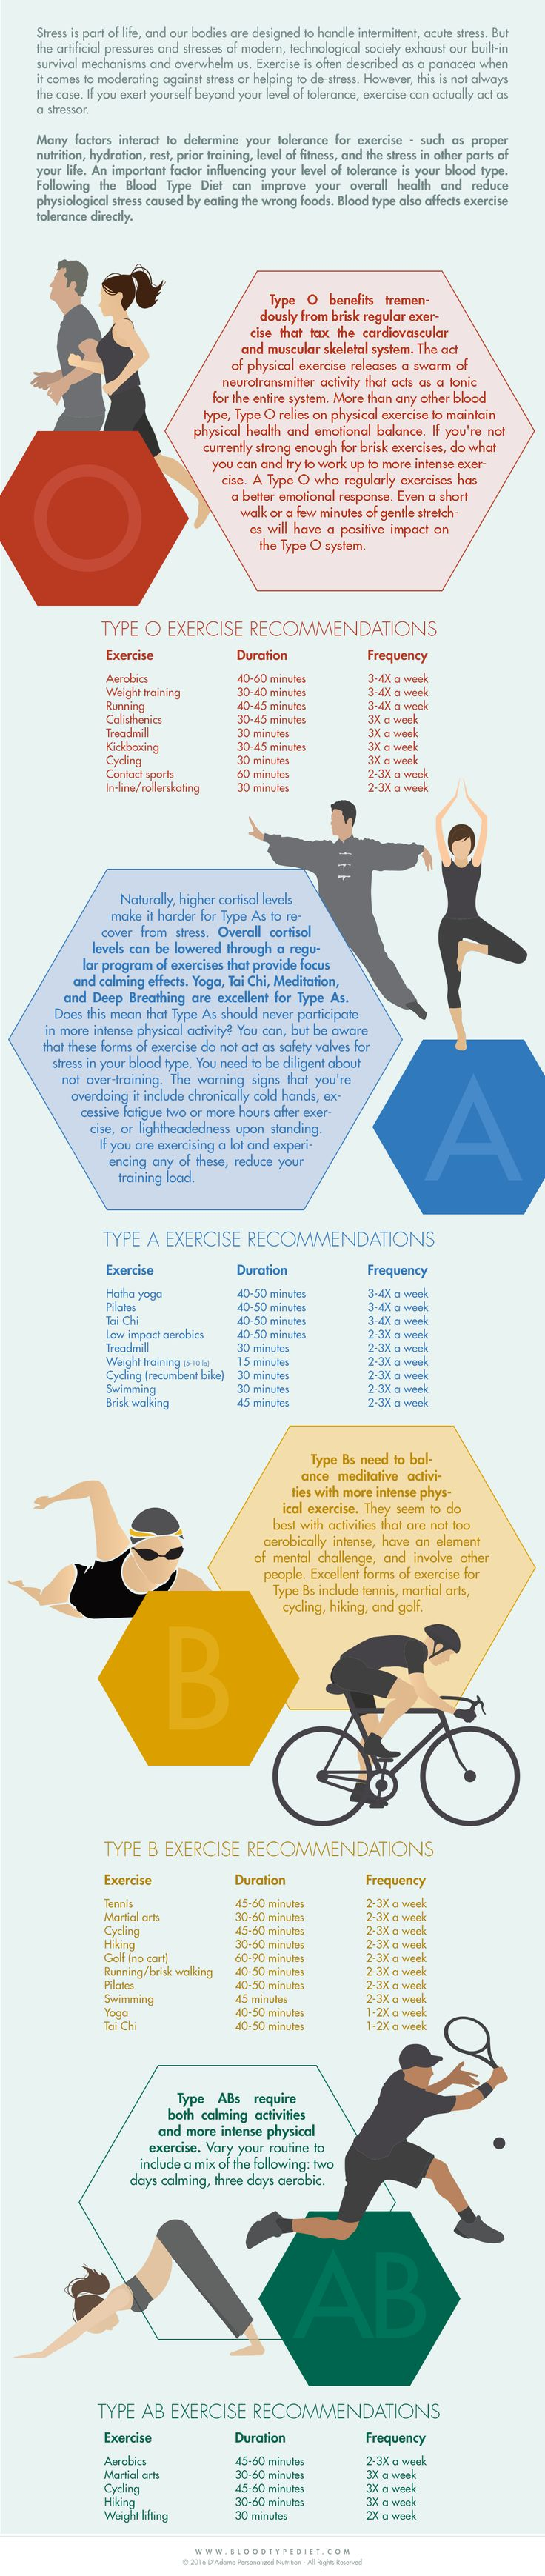 All physical activity, even when it is not exhaustive, usually leads to elevated levels of stress hormones. But once you get used to an exercise, it's not as stressful. That's what conditioning is all about. Generally speaking, trained athletes do not experience exercise internally as a stressful event, even if they push slightly past their